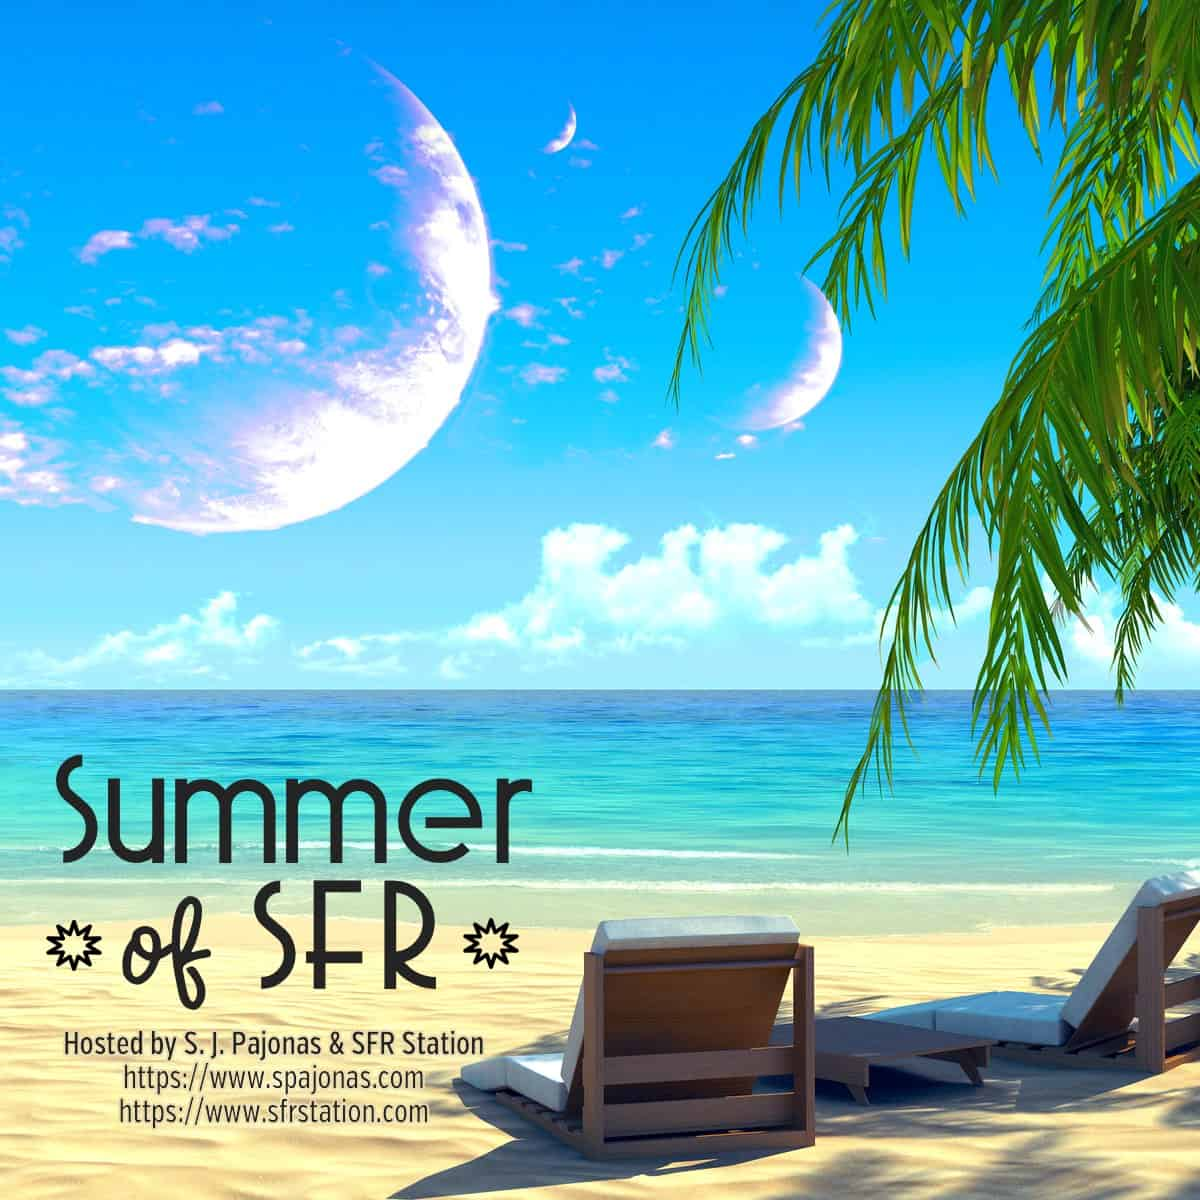 I'm setting some goals for my Summer of SFR reading!